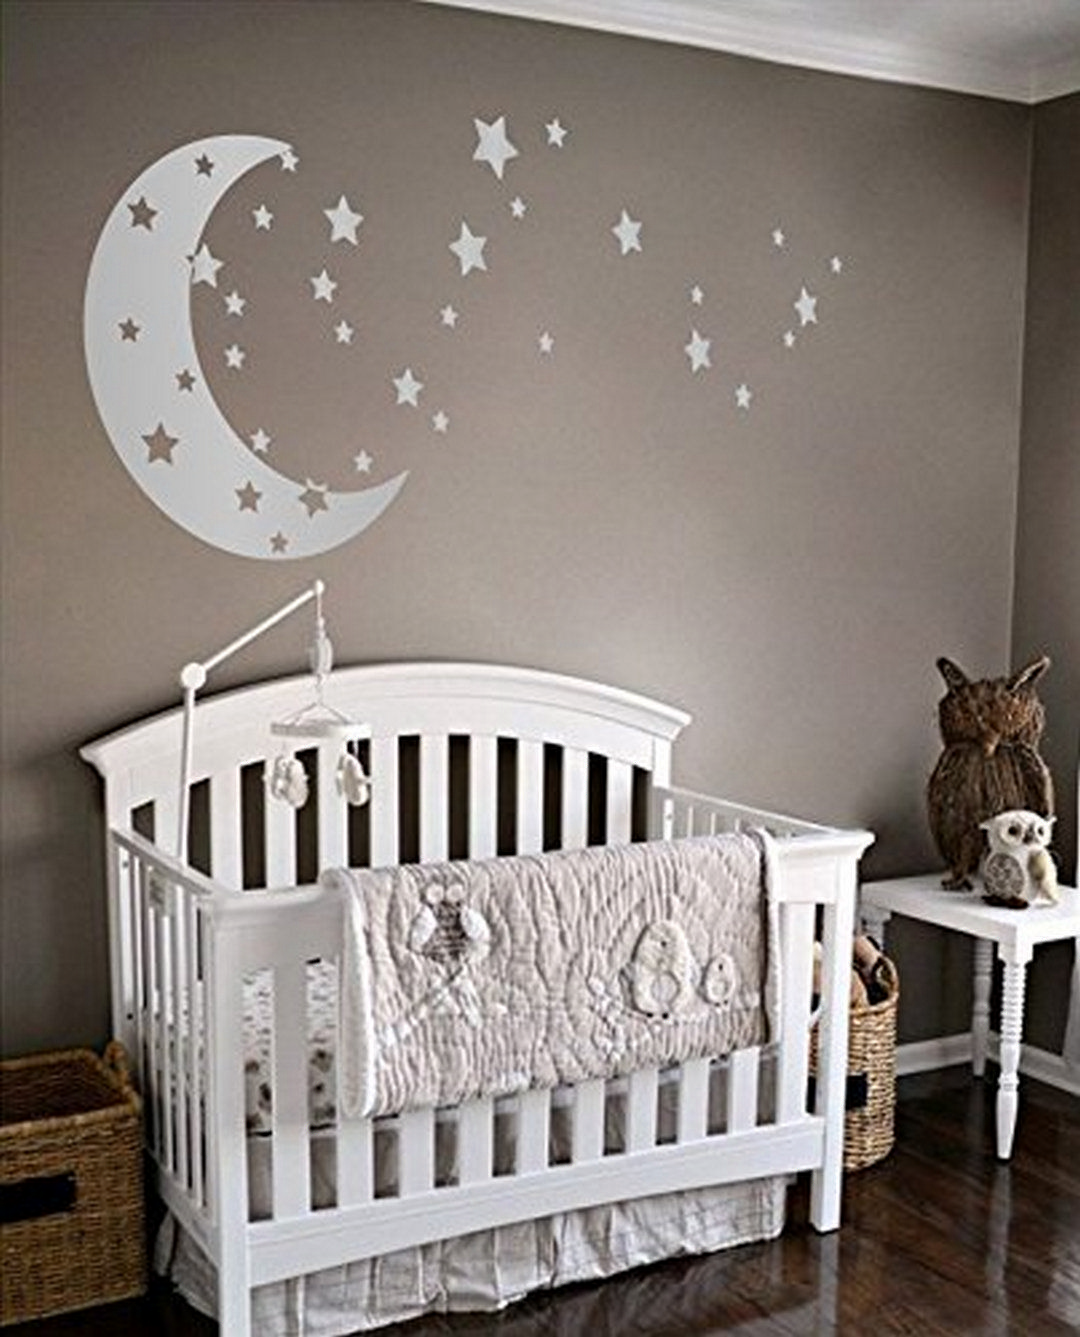 Baby Room Ideas Nursery Themes And Decor: 38 Dazzling Moon And Stars Nursery Decoration Ideas